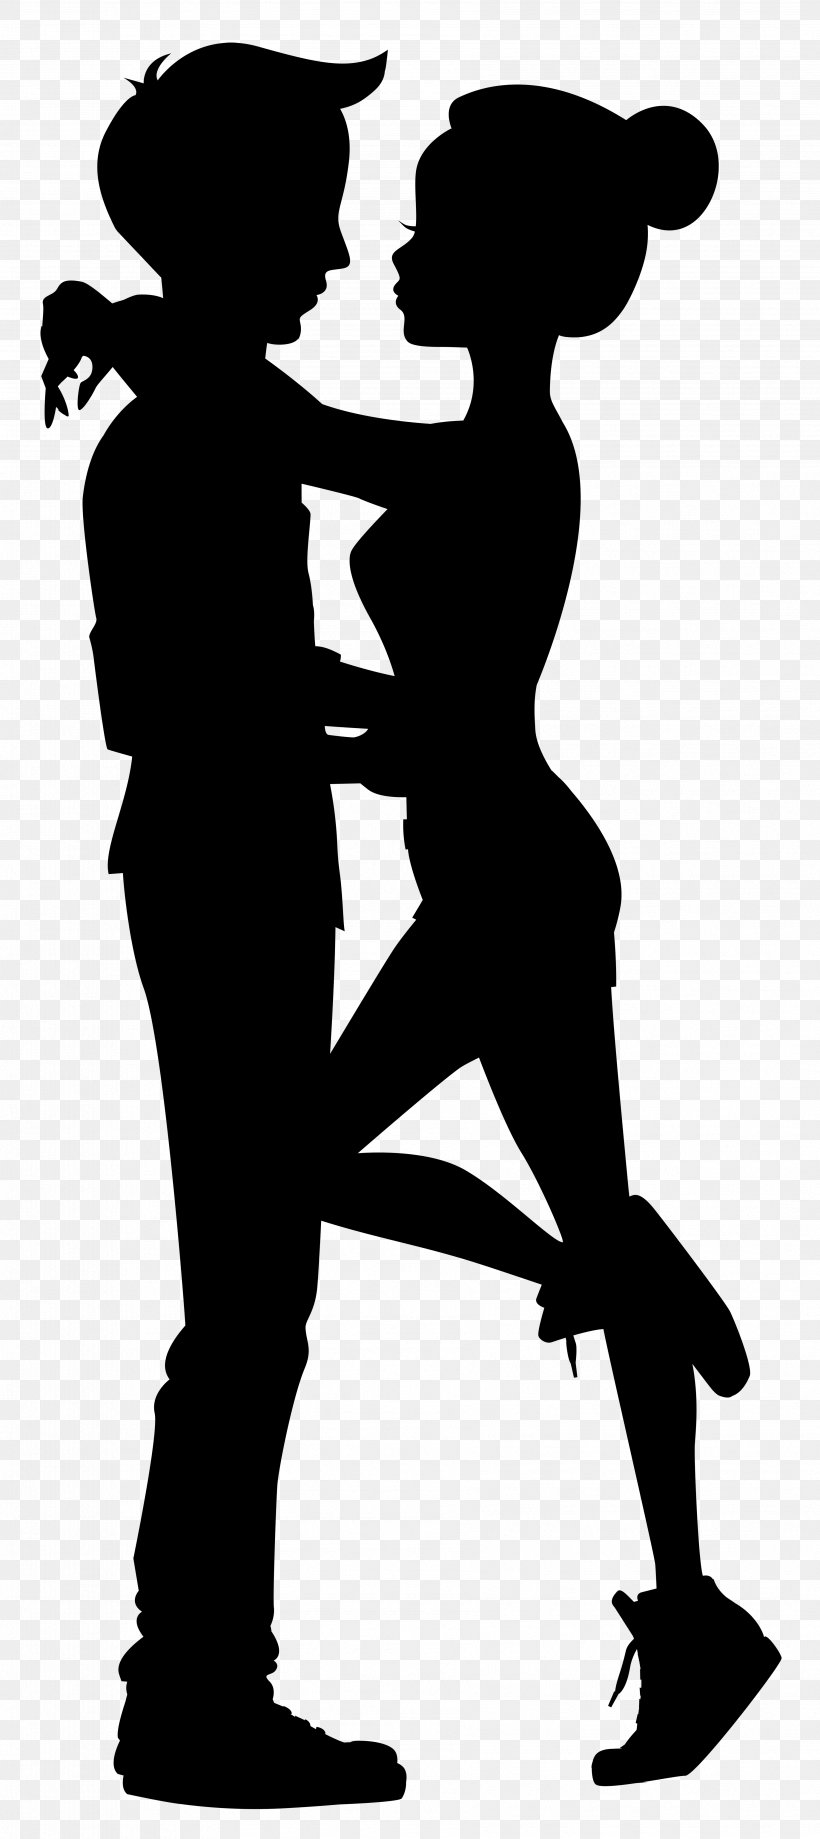 Silhouette Drawing Clip Art, PNG, 3566x8000px, Silhouette, Arm, Black And White, Cartoon, Clip Art Download Free